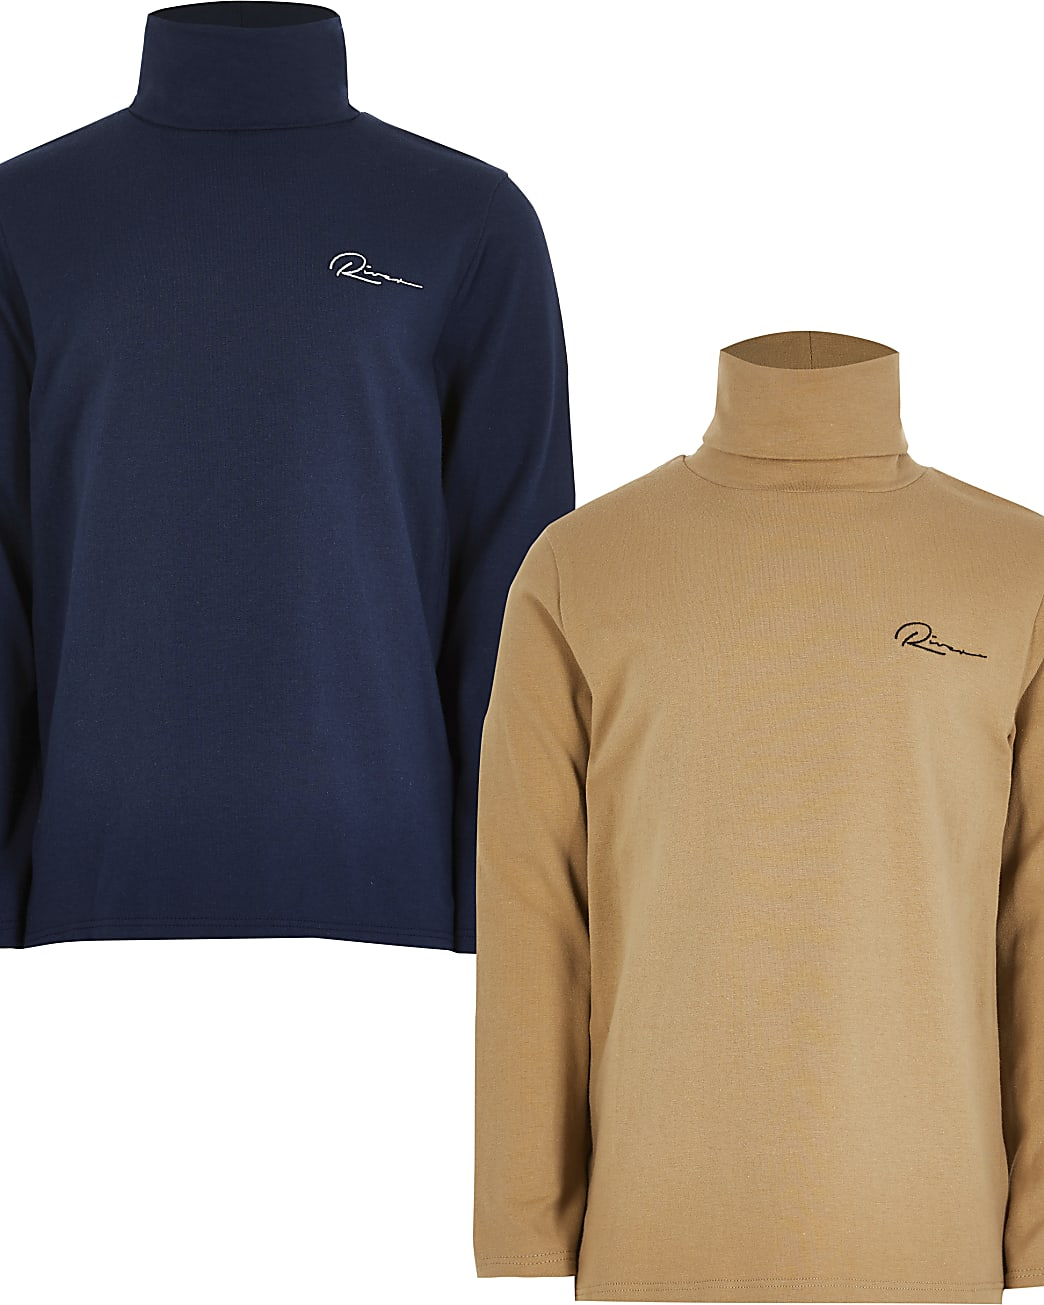 Boys camel and navy roll neck top 2 pack